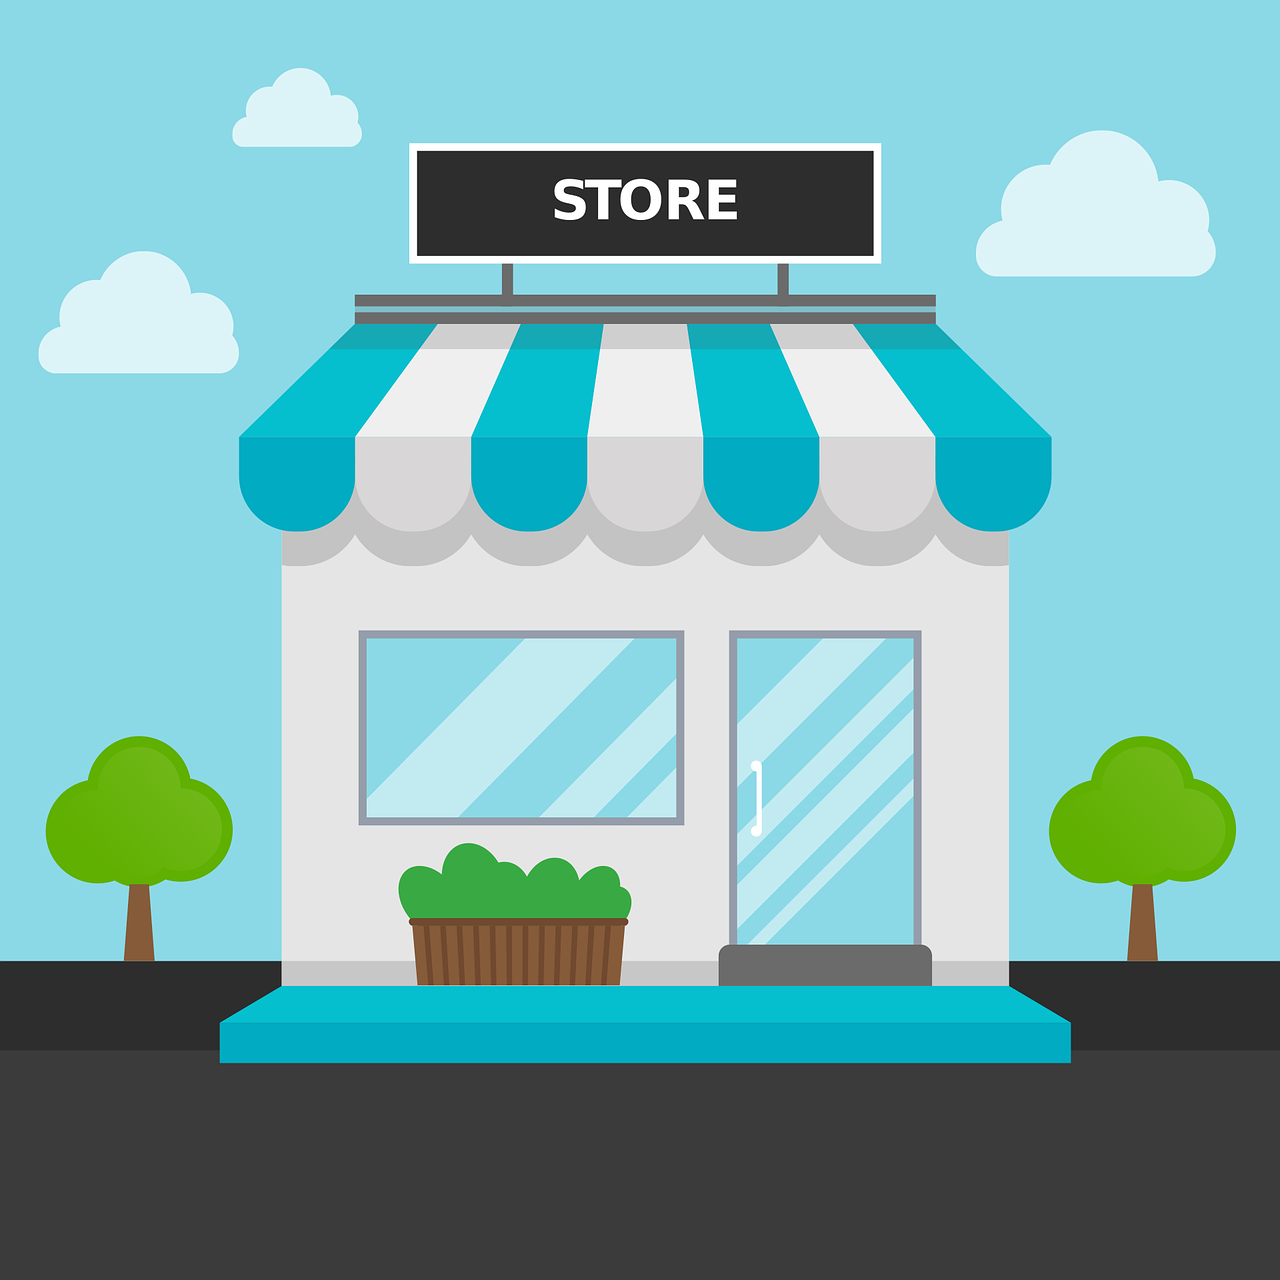 SMALL TOWN BUSINESS IDEAS: THESE 5 LOW-COST BUSINESSES OF SMALL TOWNS ARE VERY BENEFICIAL - THEY ARE BUMPER EARNINGS